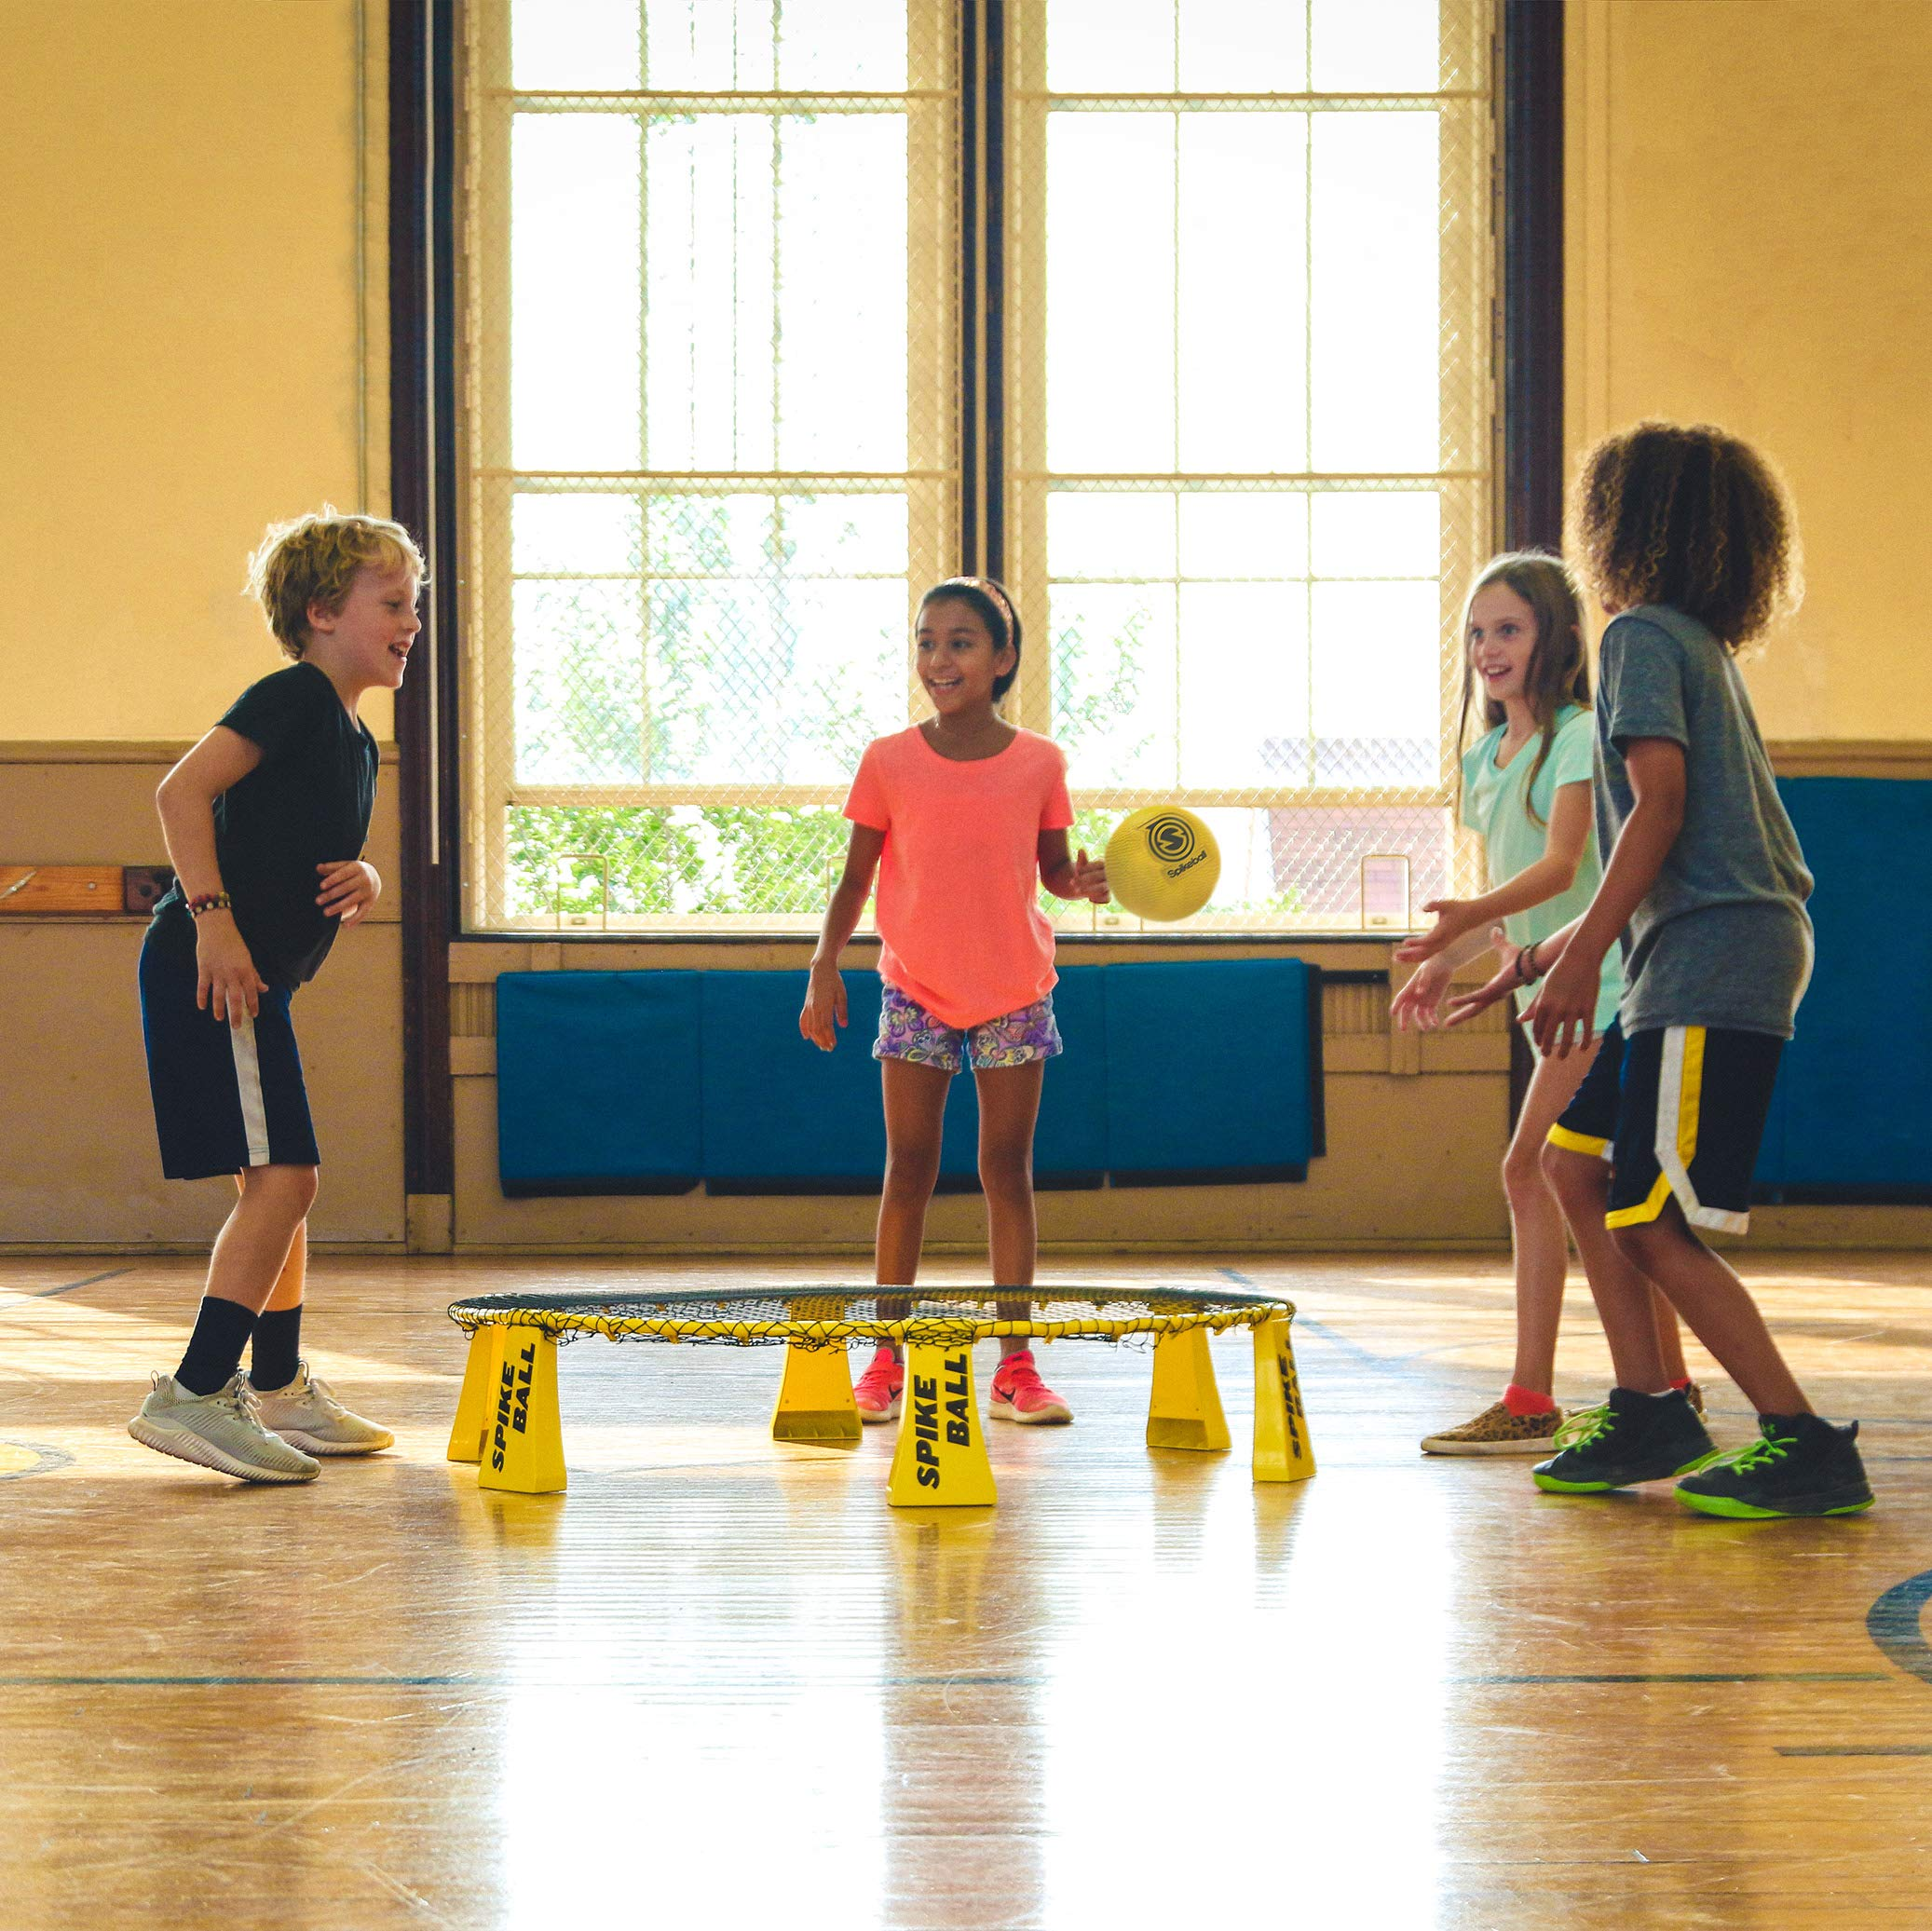 Spikeball Starter Kit - 50% Larger Net and Ball - Played Outdoors, Indoors, Yard, Lawn, Beach - Designed for Kids 12 and Under by Spikeball (Image #5)